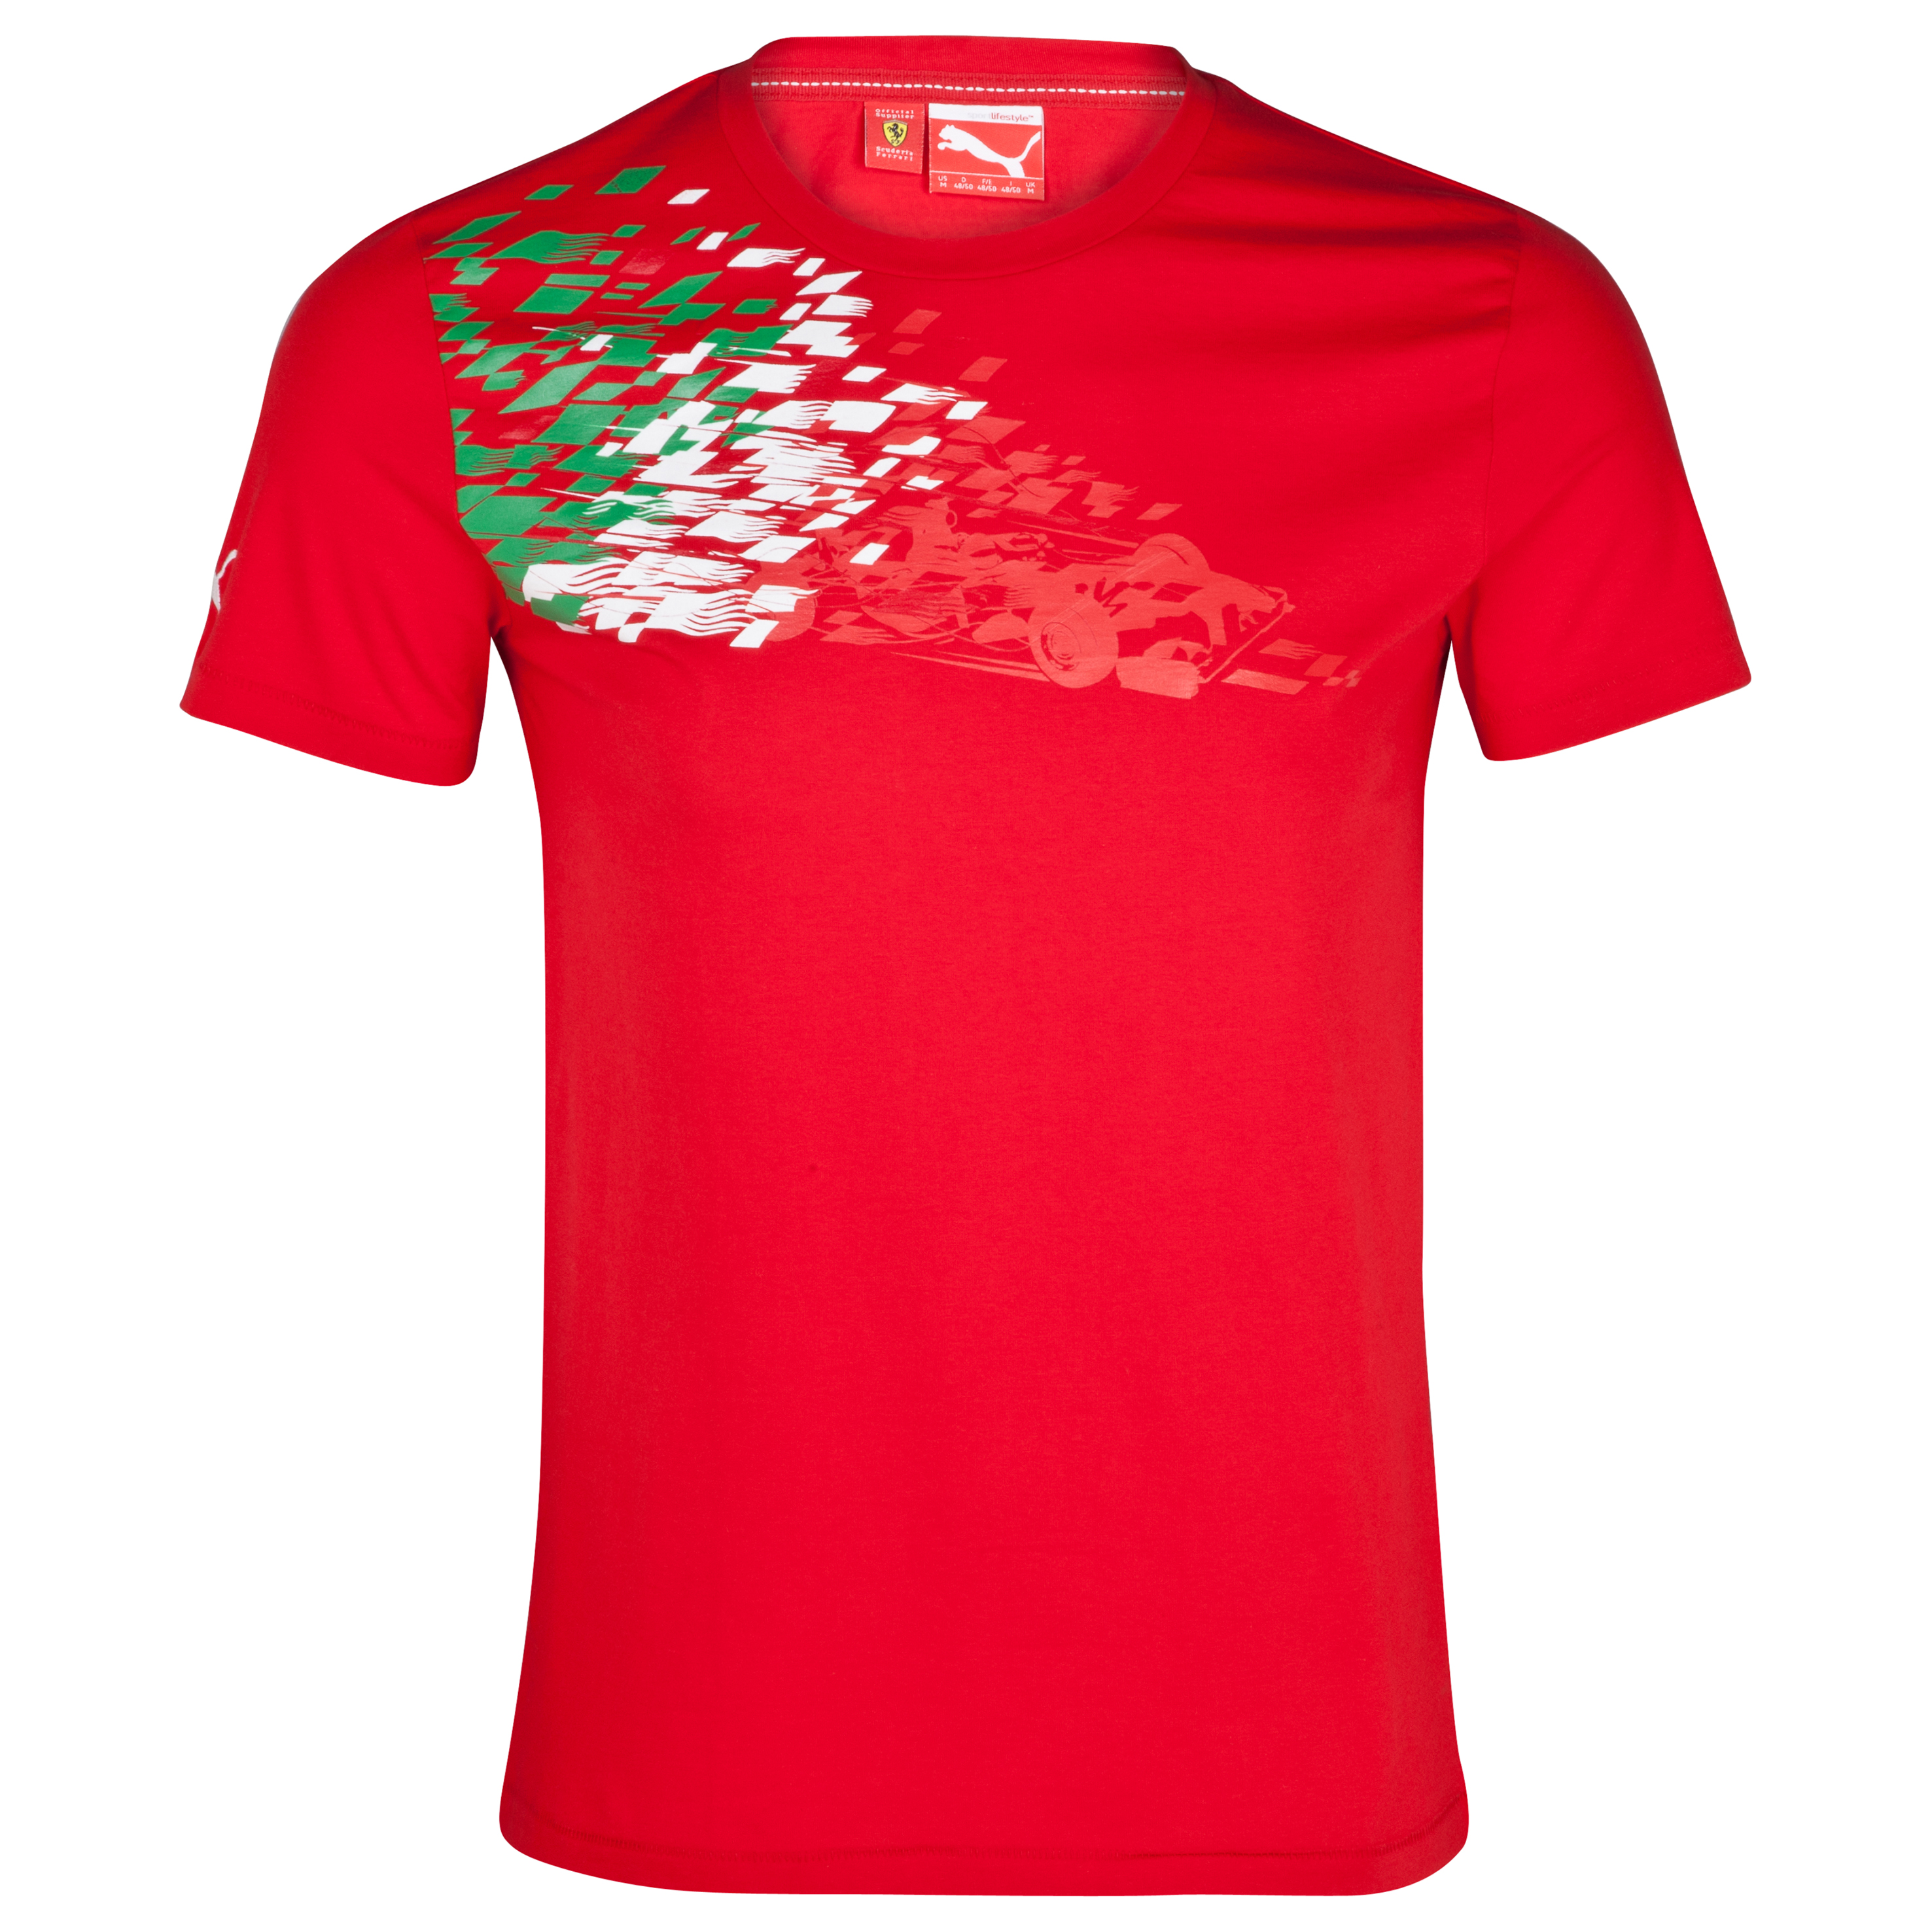 Scuderia Ferrari Graphic T-Shirt - Rosso Corsa